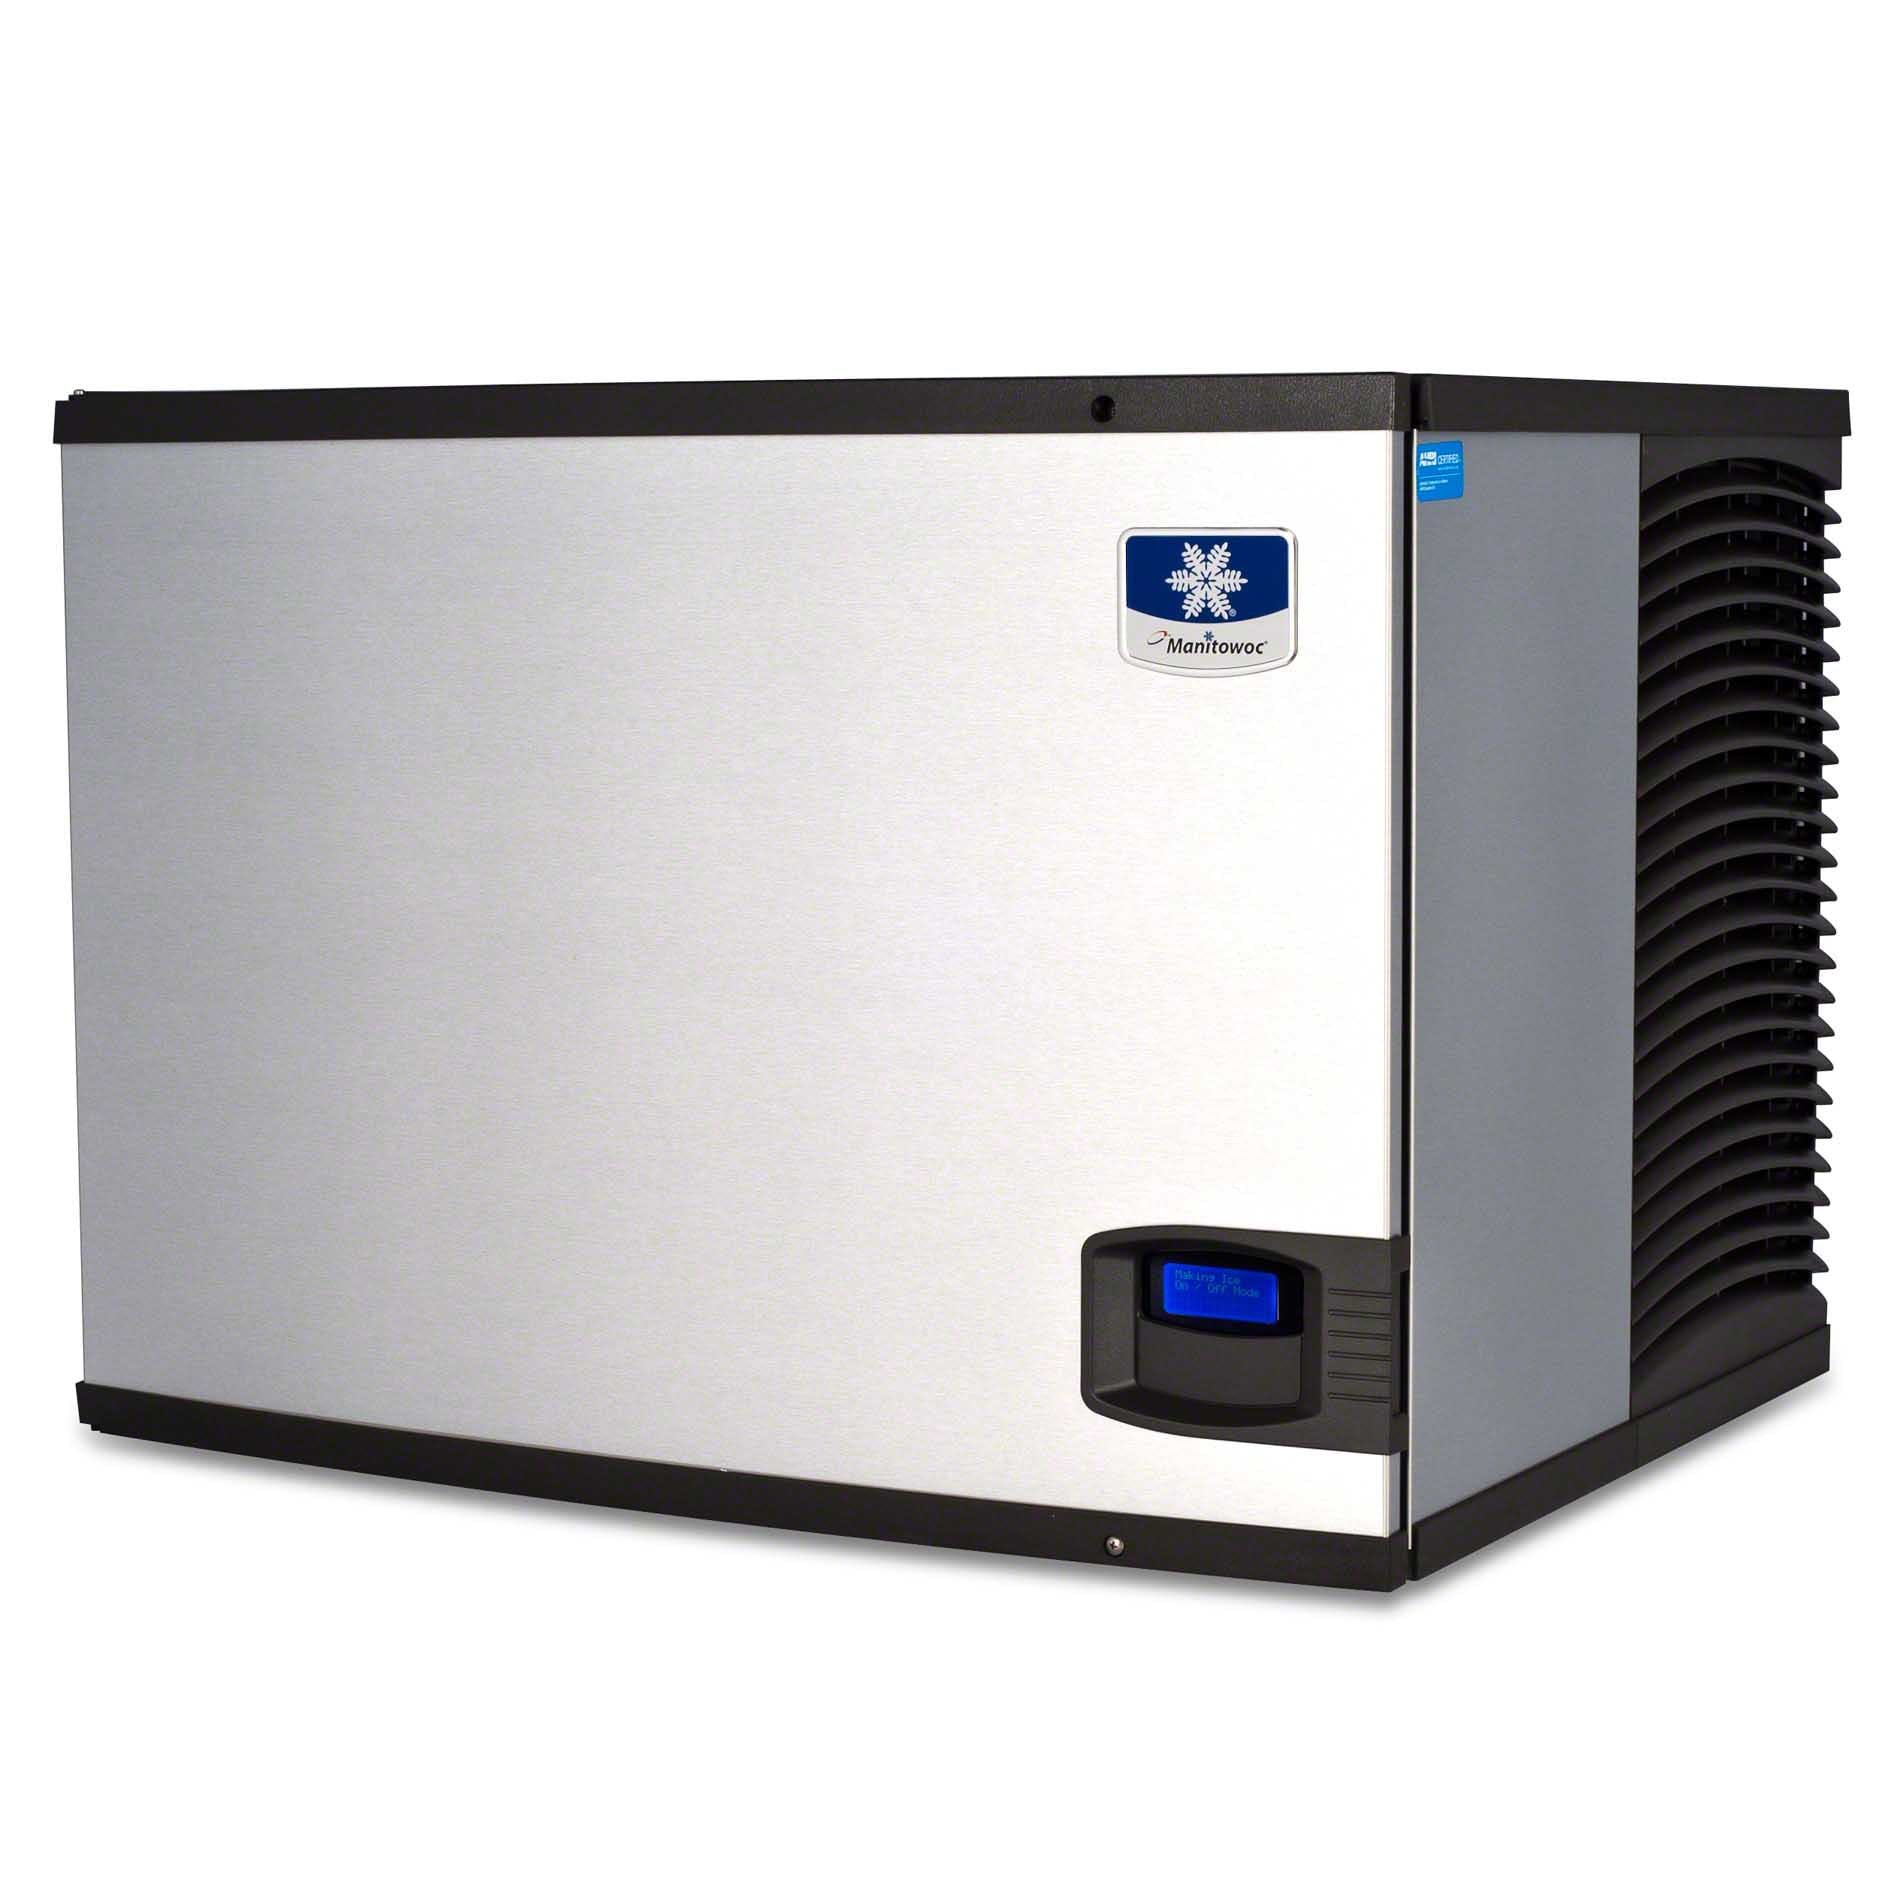 Manitowoc - ID-0592N 480 lb Full Size Cube Ice Machine - Indigo Series Ice machine sold by Food Service Warehouse